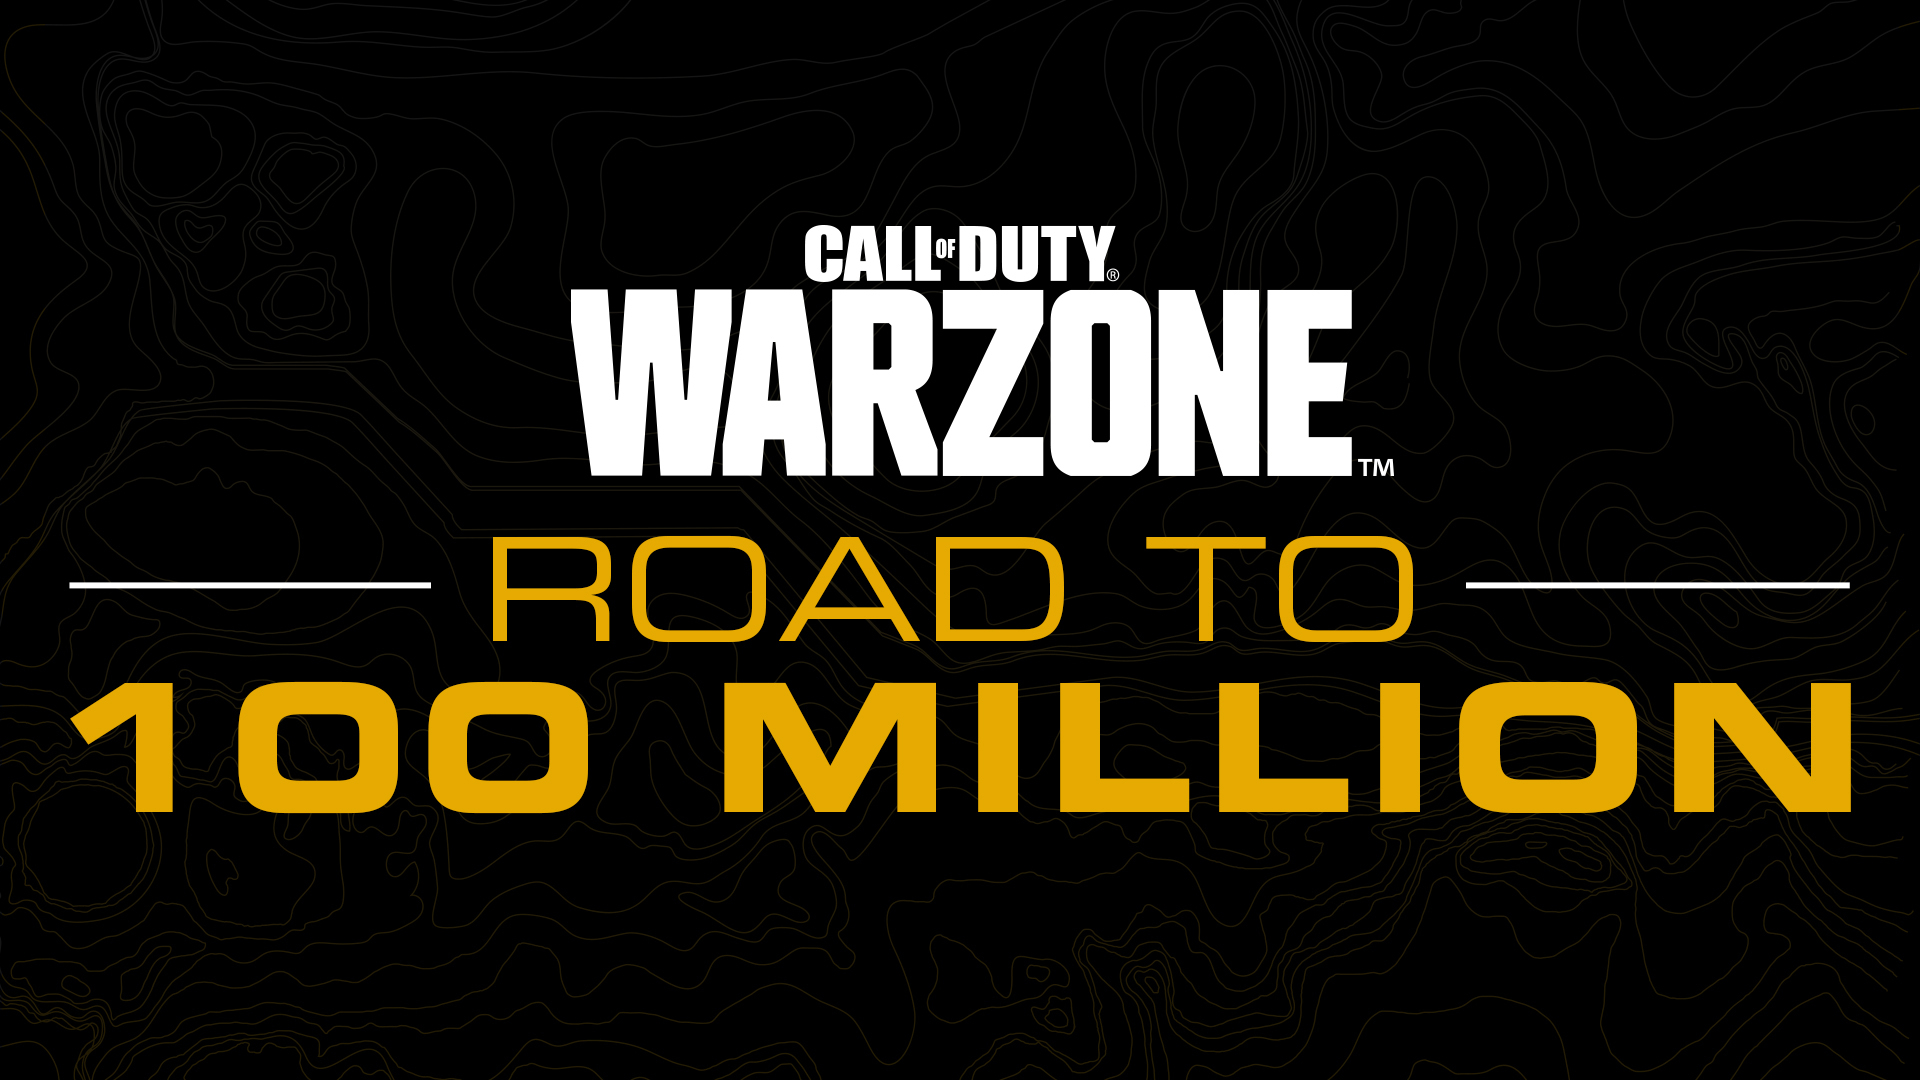 Two incredible milestones: 100 million players, 400 million sales